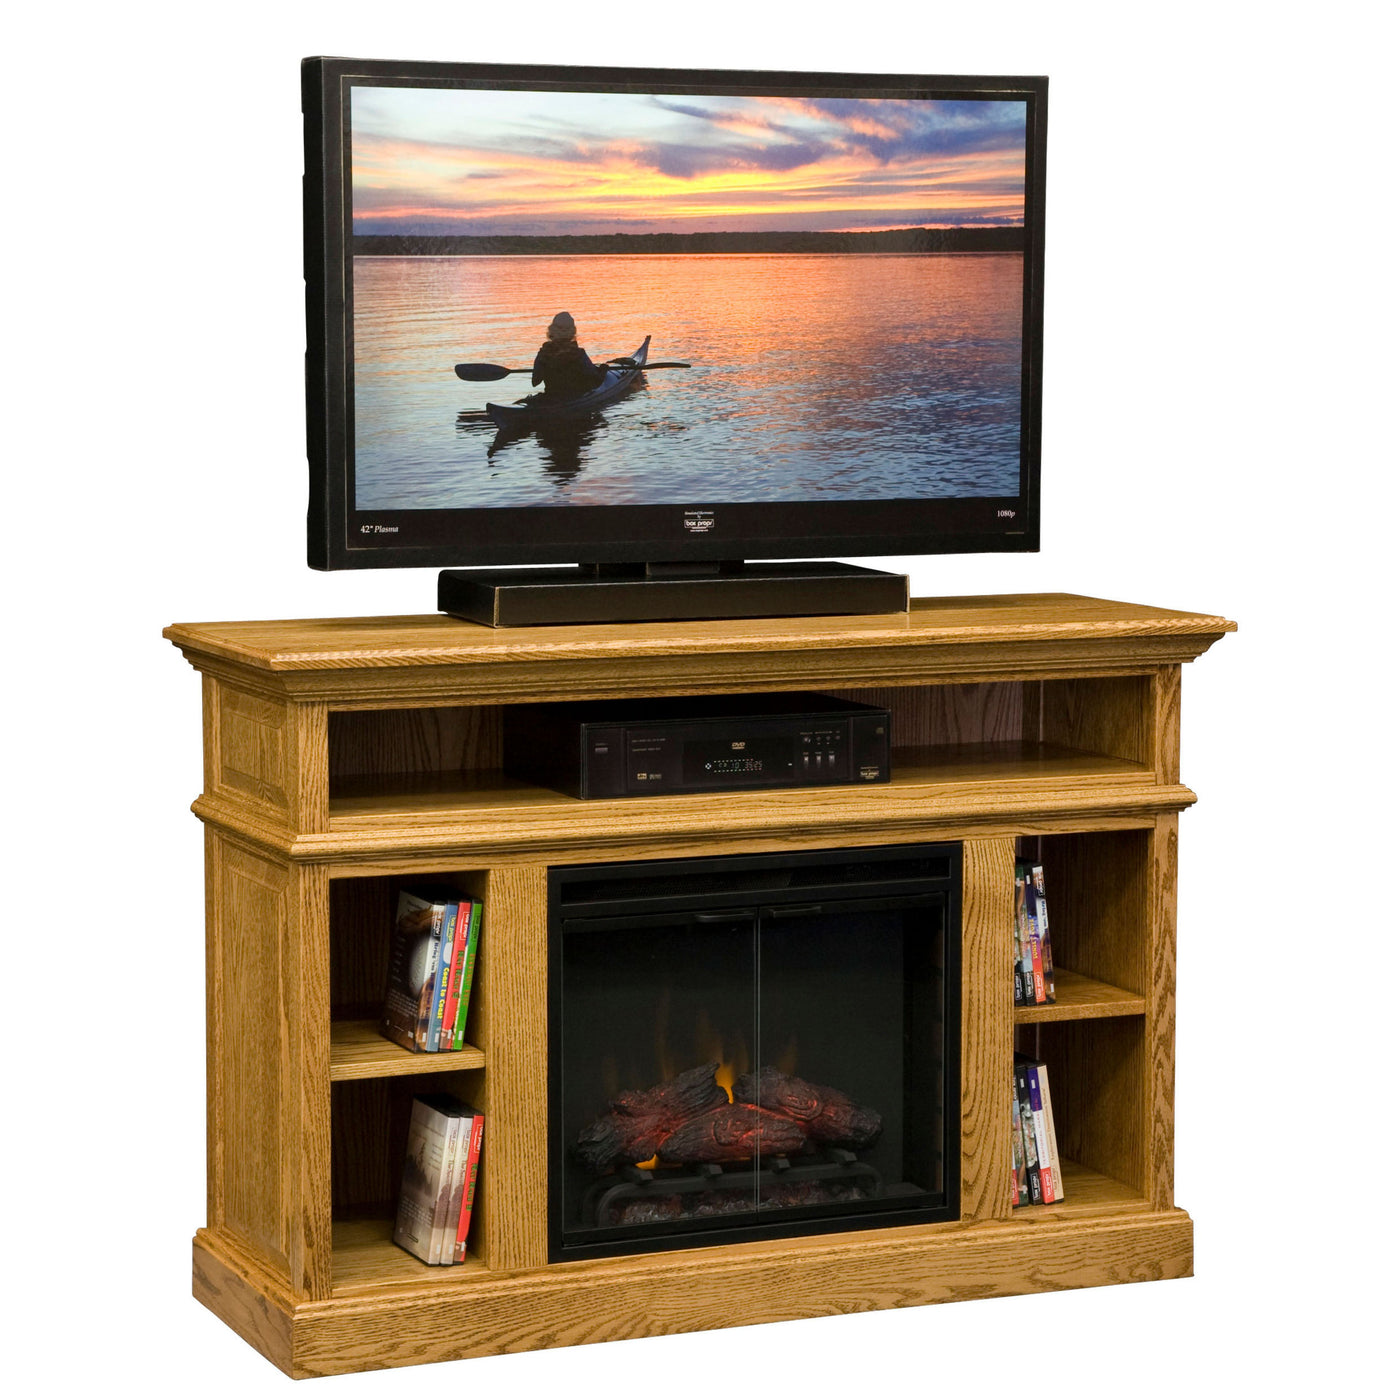 DN Fireplace TV Console